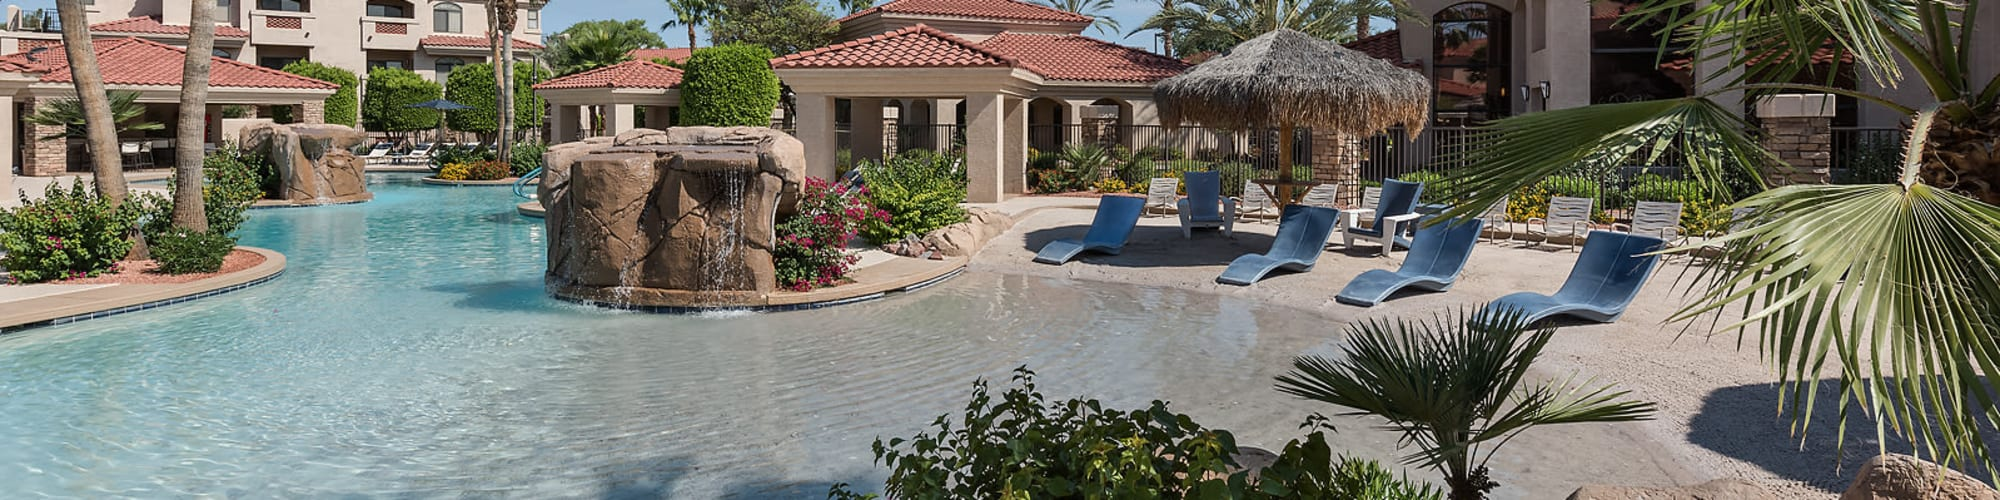 Amenities at San Lagos in Glendale, Arizona